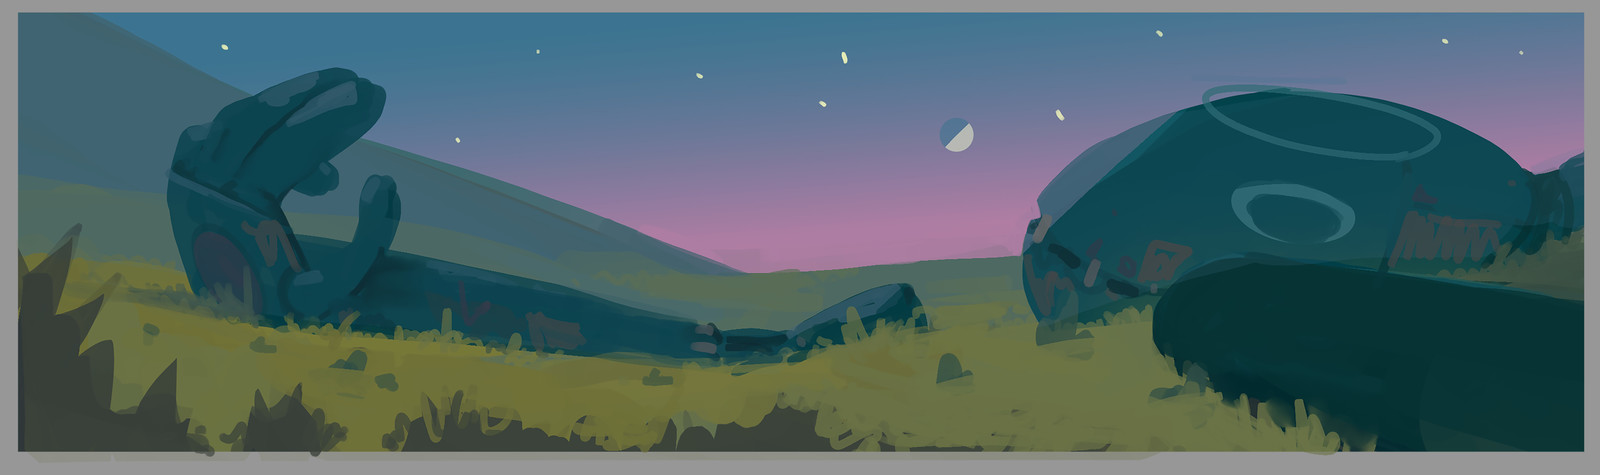 initial mood painting